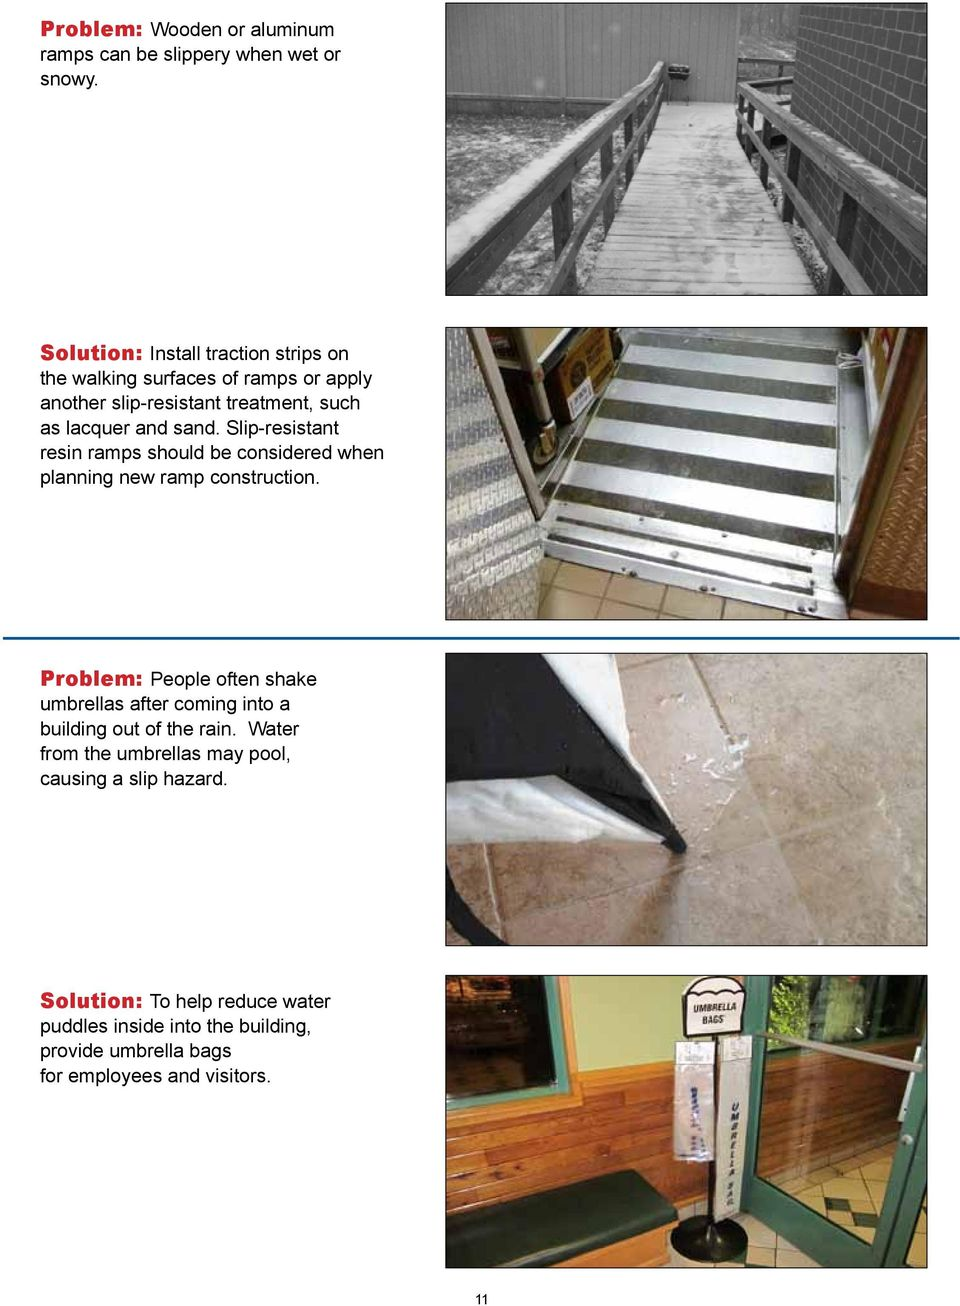 Slip-resistant resin ramps should be considered when planning new ramp construction.